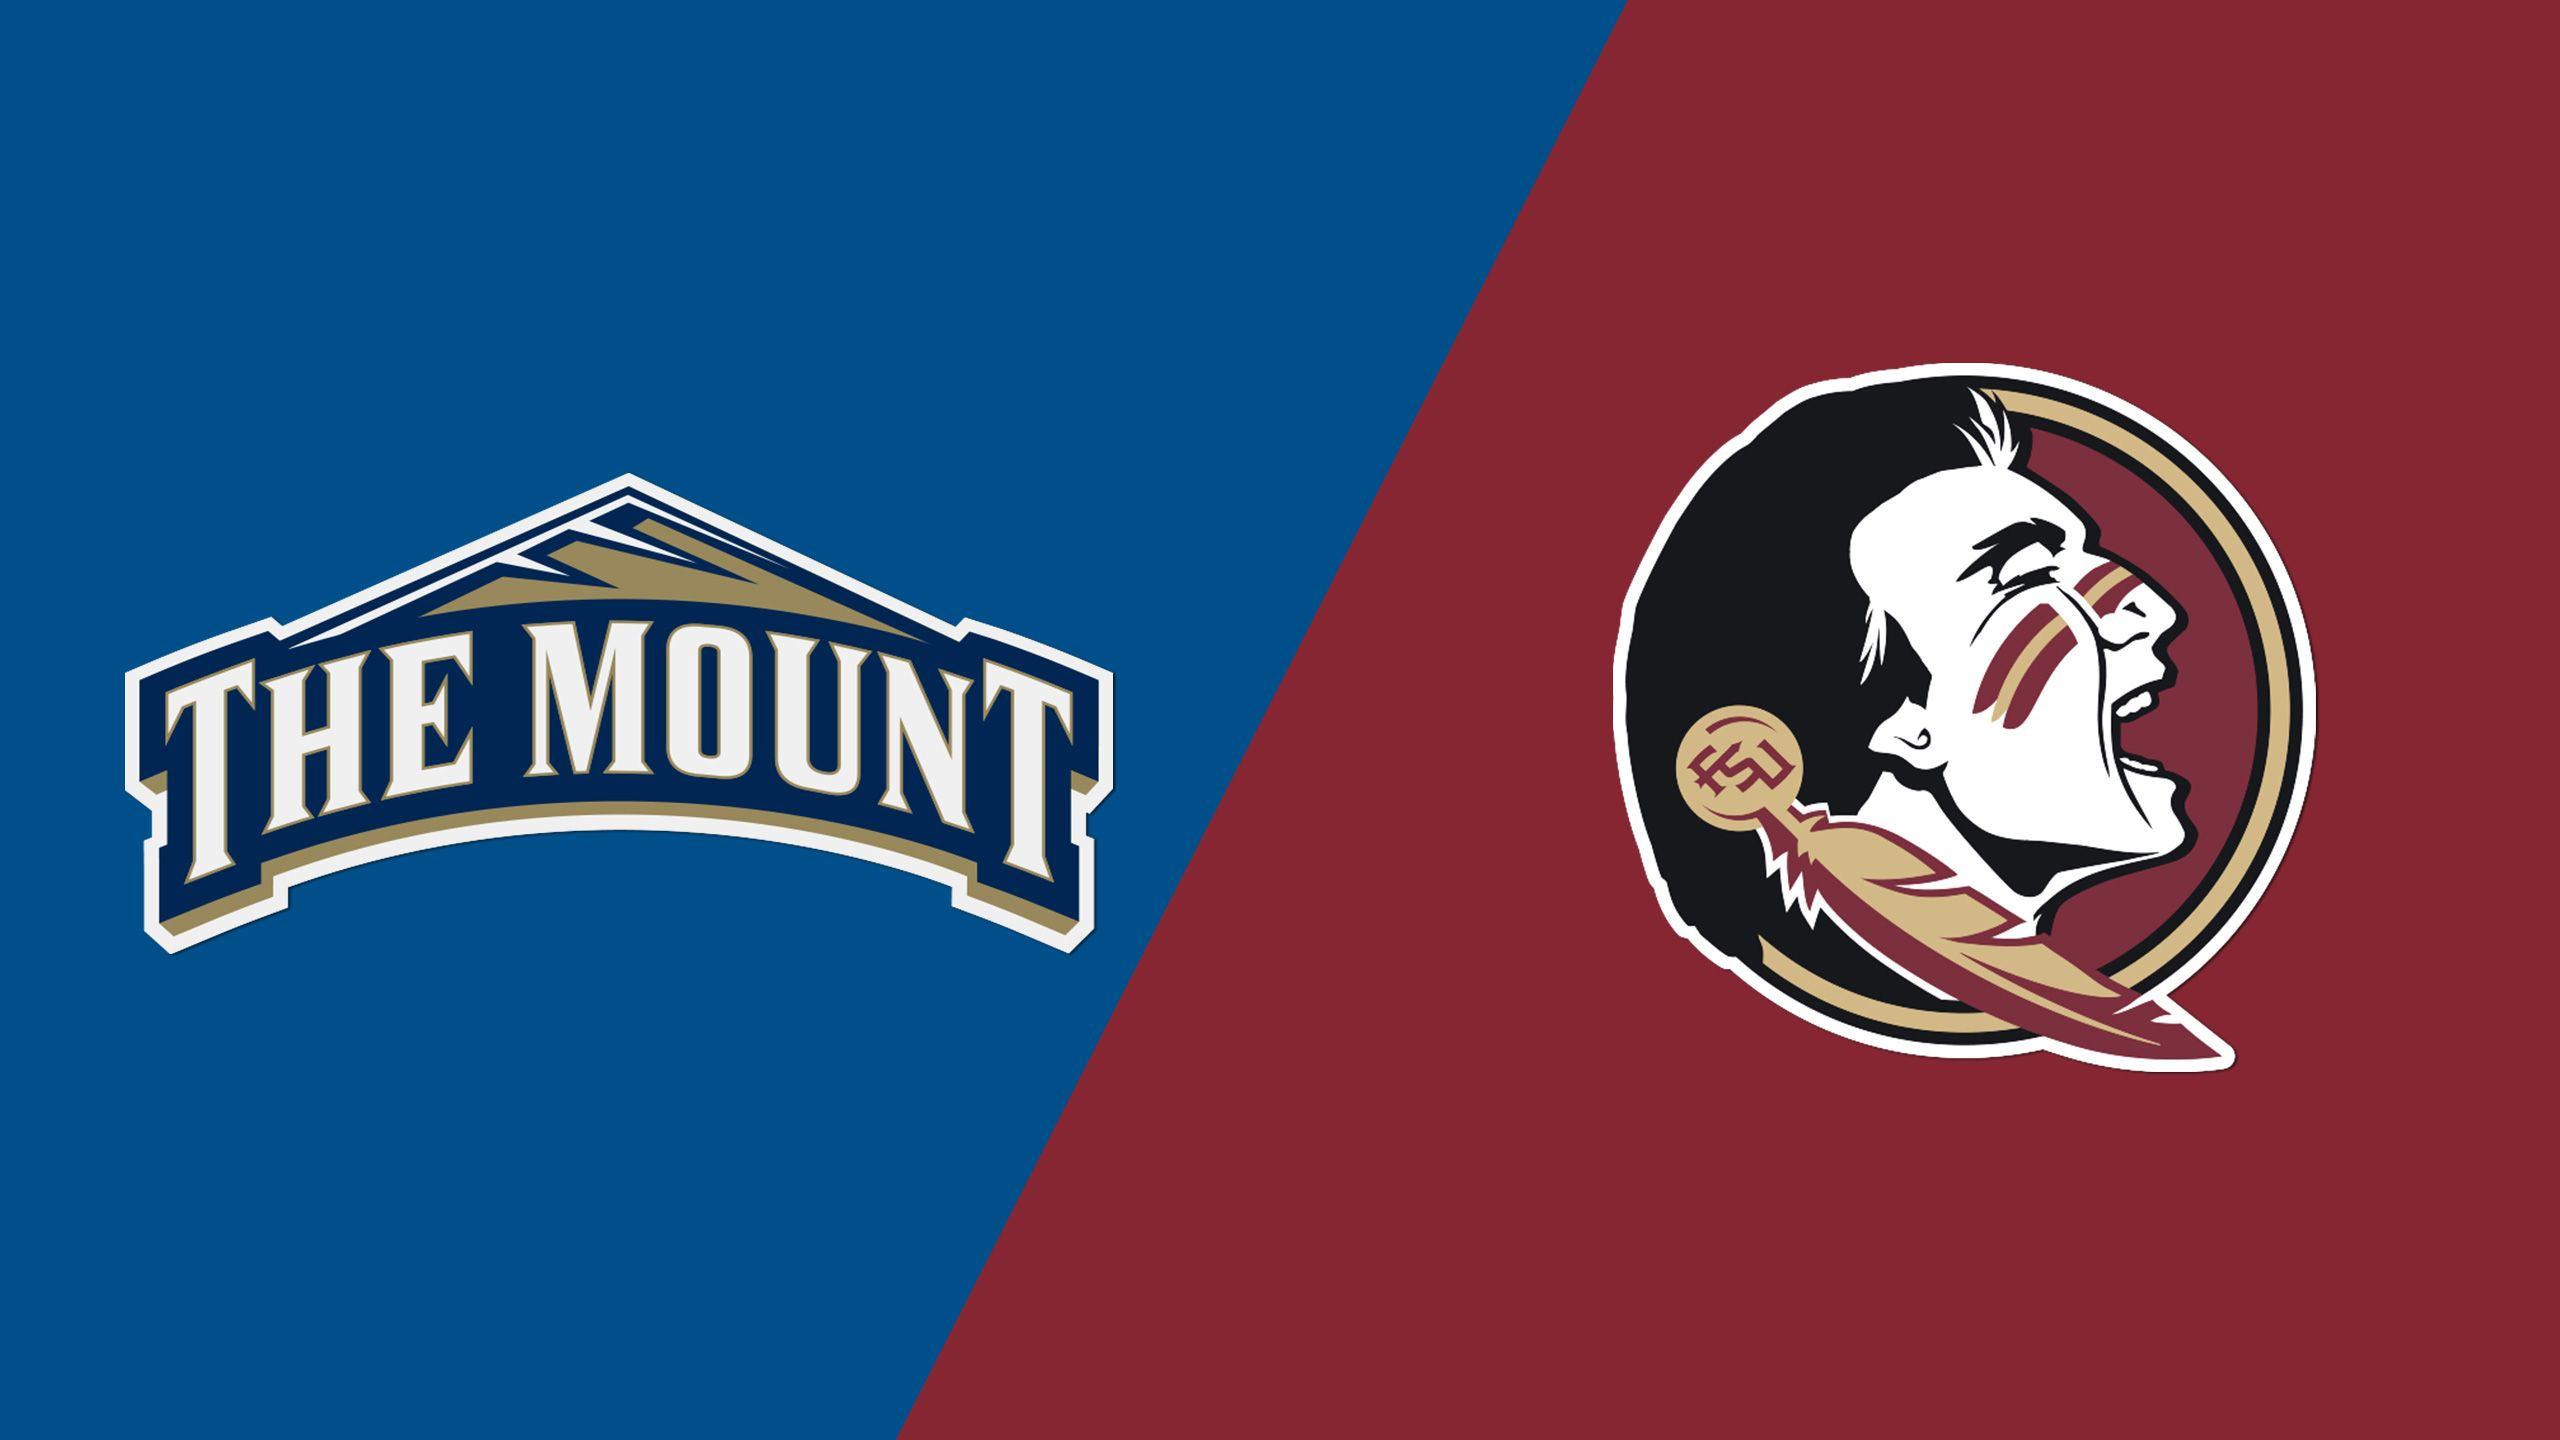 Mount St. Mary's vs. #13 Florida State (Baseball)